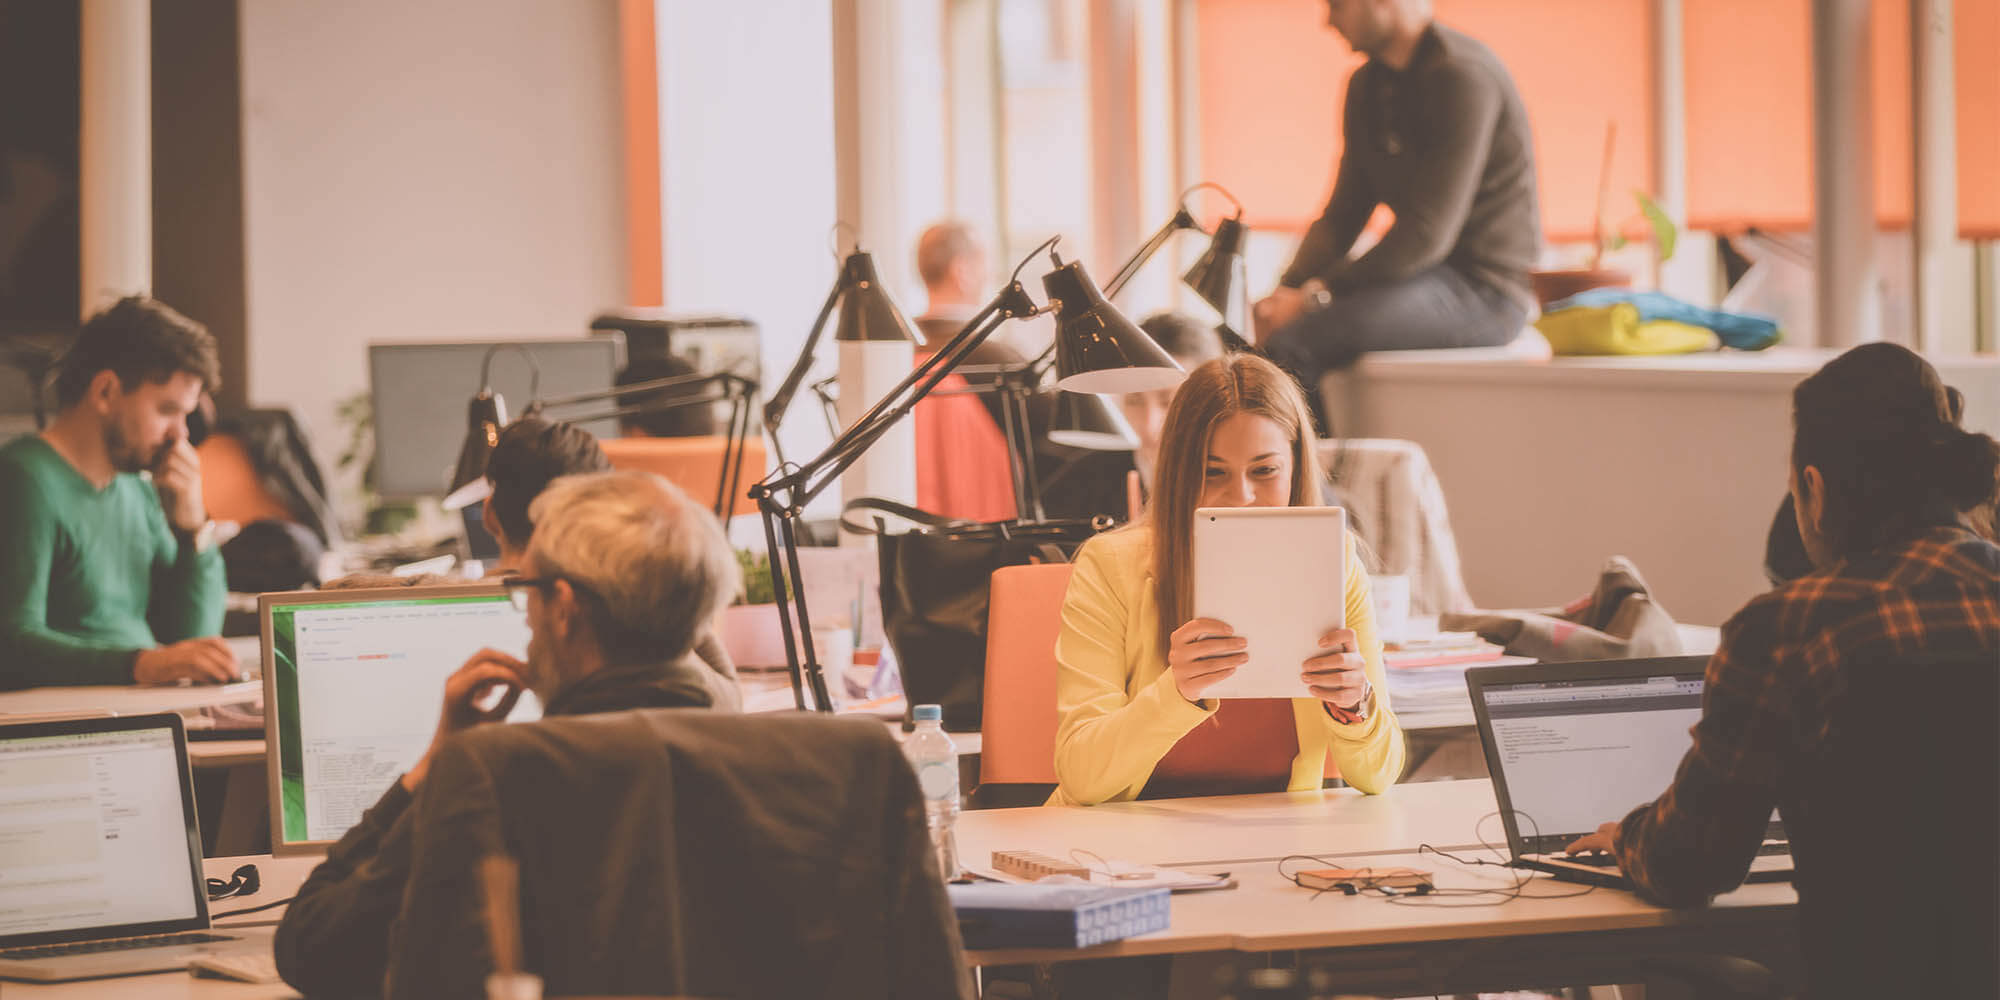 Coworking is networking to the next level